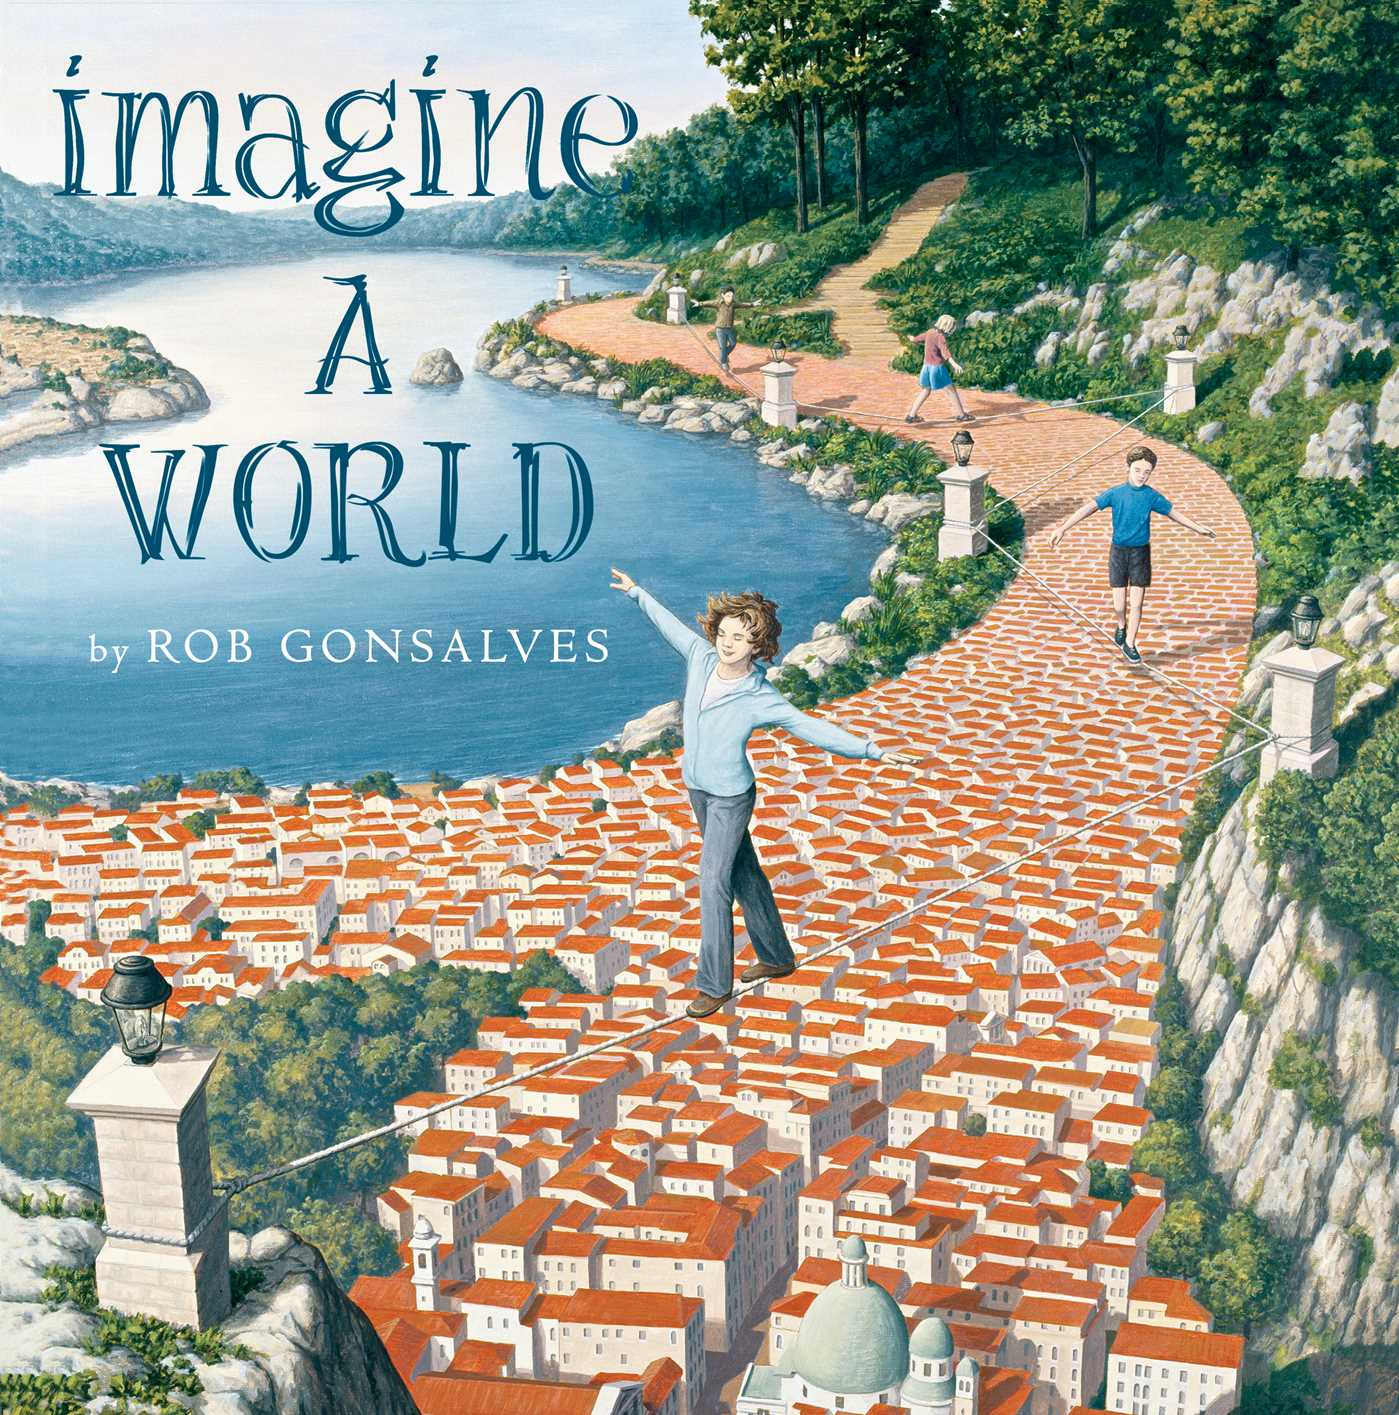 Imagine-a-world-9781481449731_hr